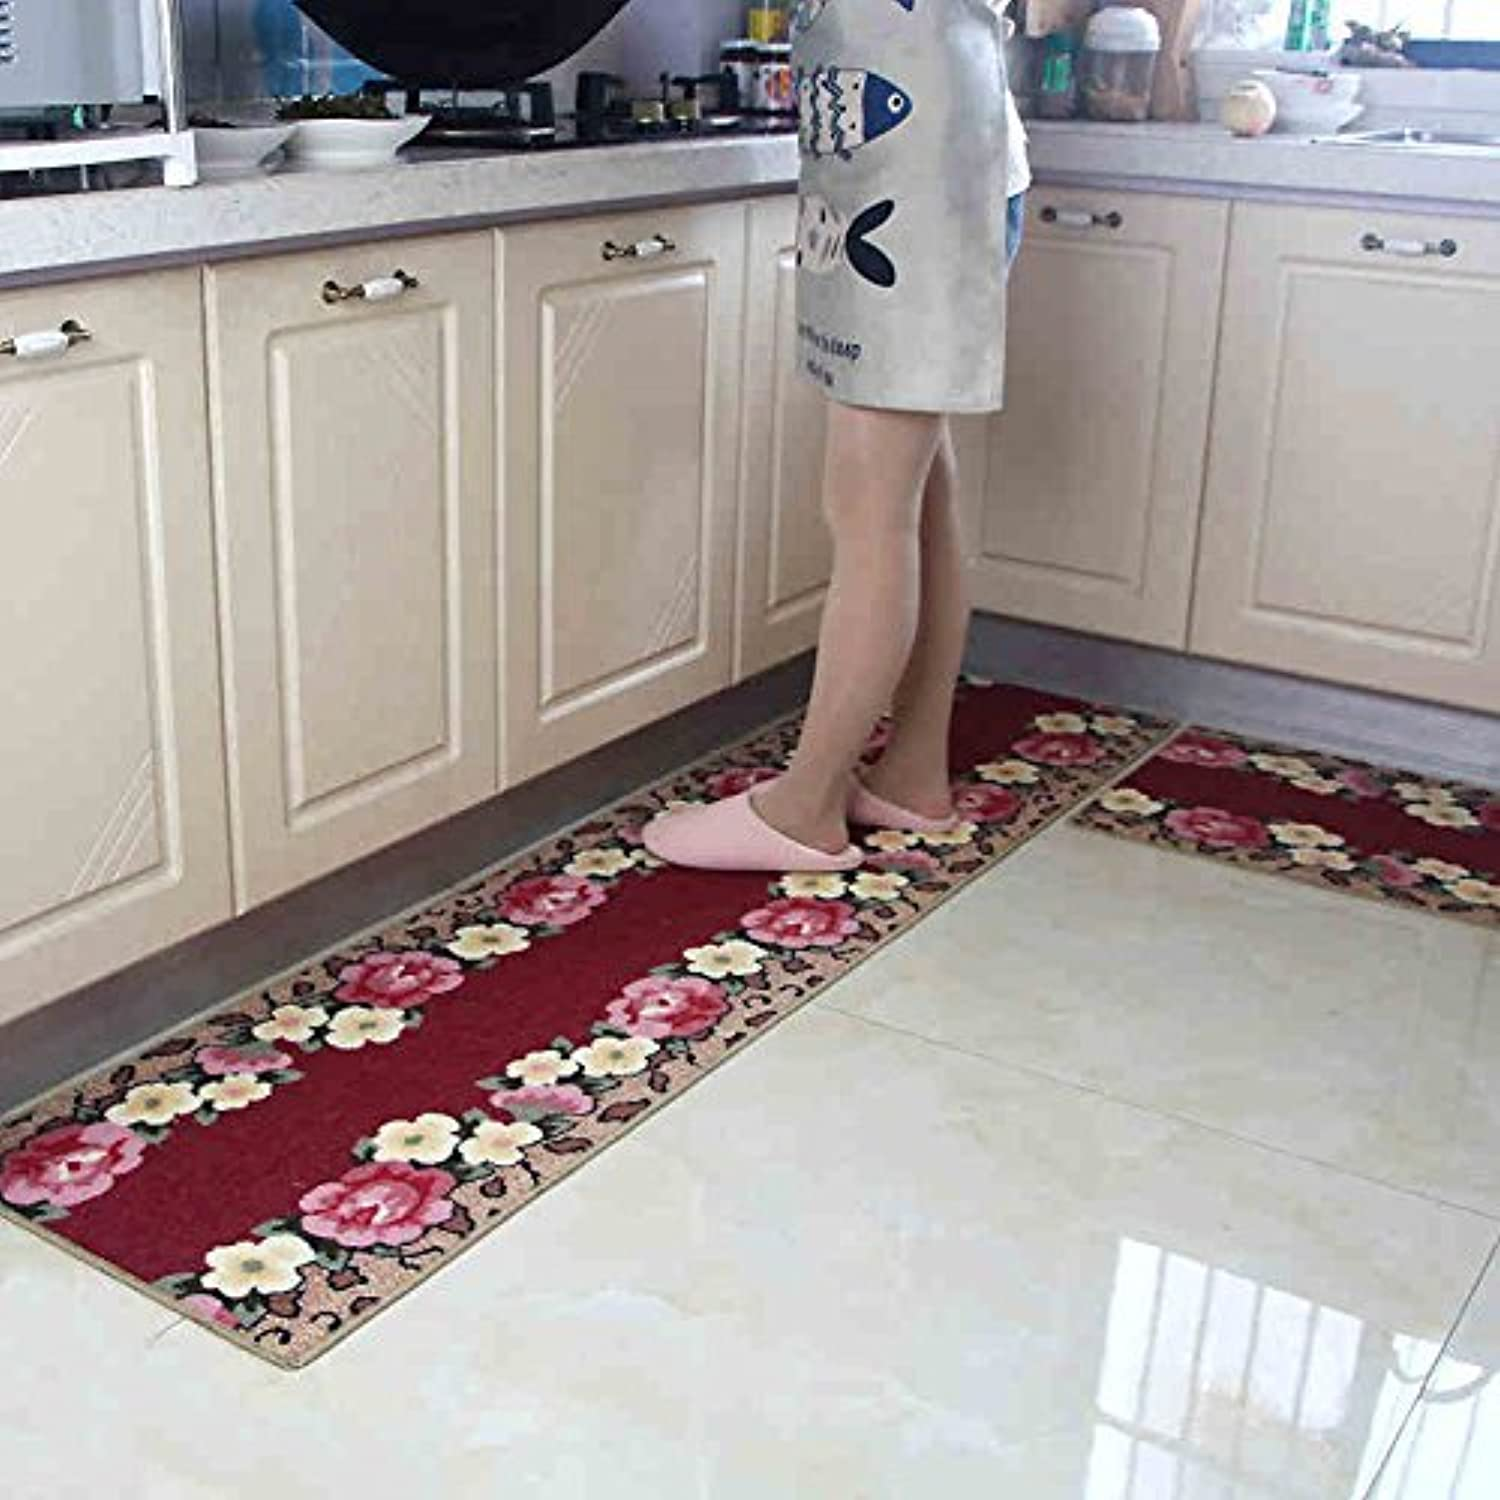 Kitchen Floor Mats Long Absorbent Absorbent Mat The Entrance Door Mat The Door The Door Hall Bedroom Bathroom Cushion Foot Pad Soft and Comfortable (color    1)